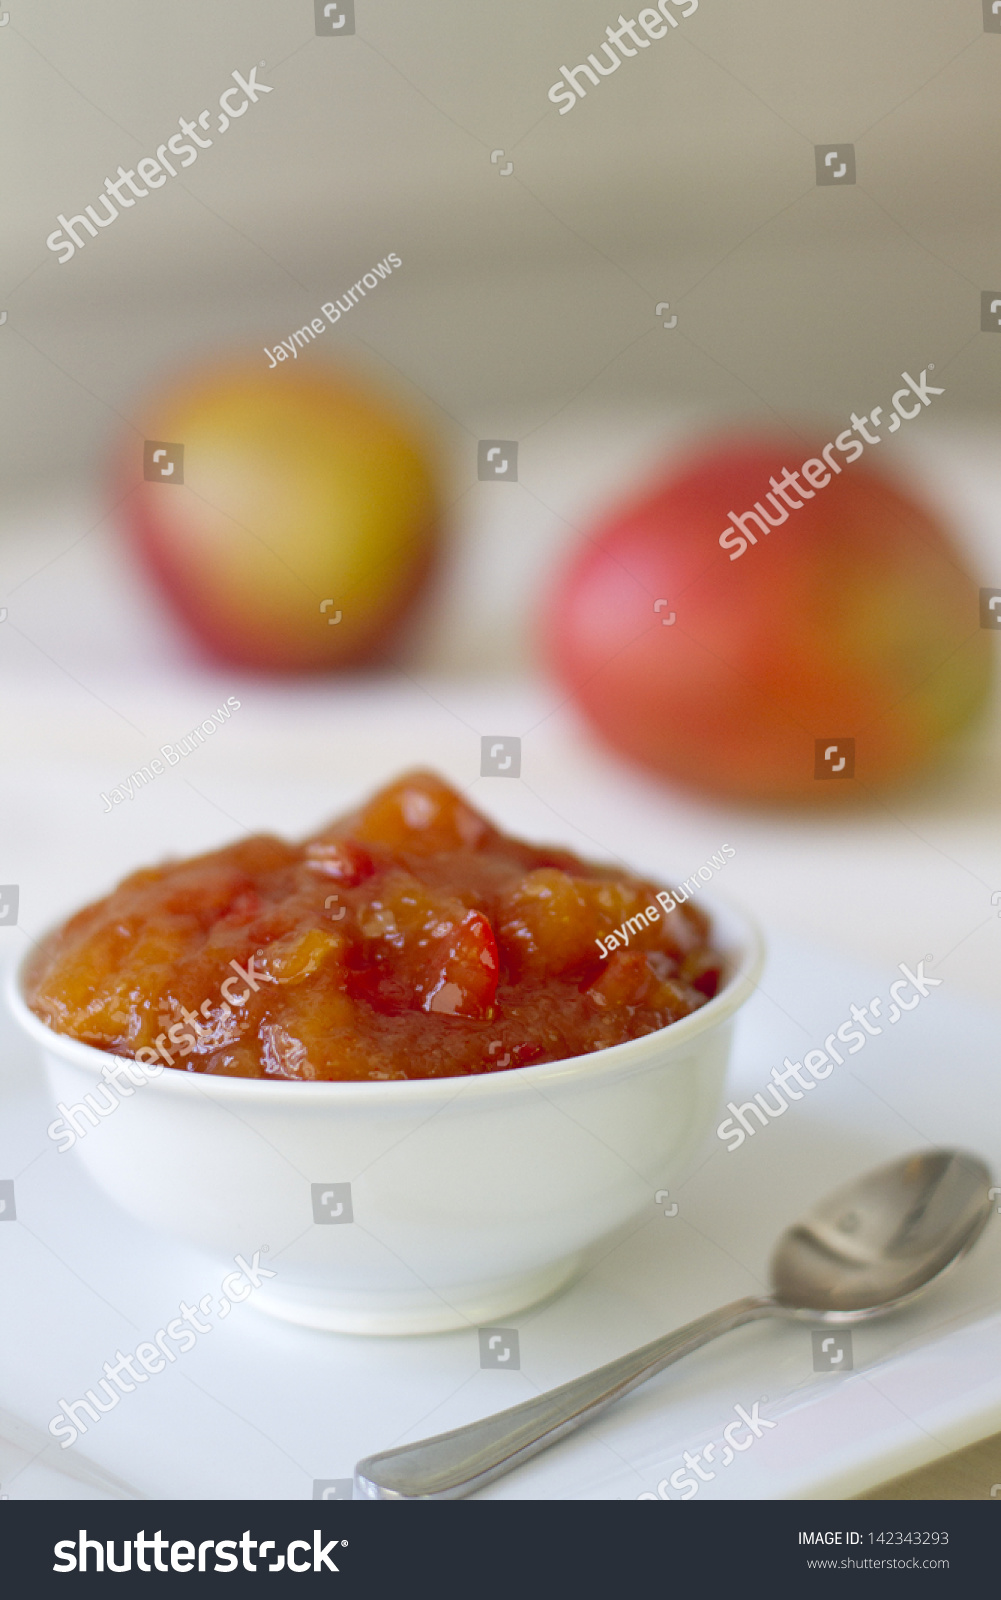 Homemade Mango Chutney With Ginger And Red Pepper. Stock Photo ...